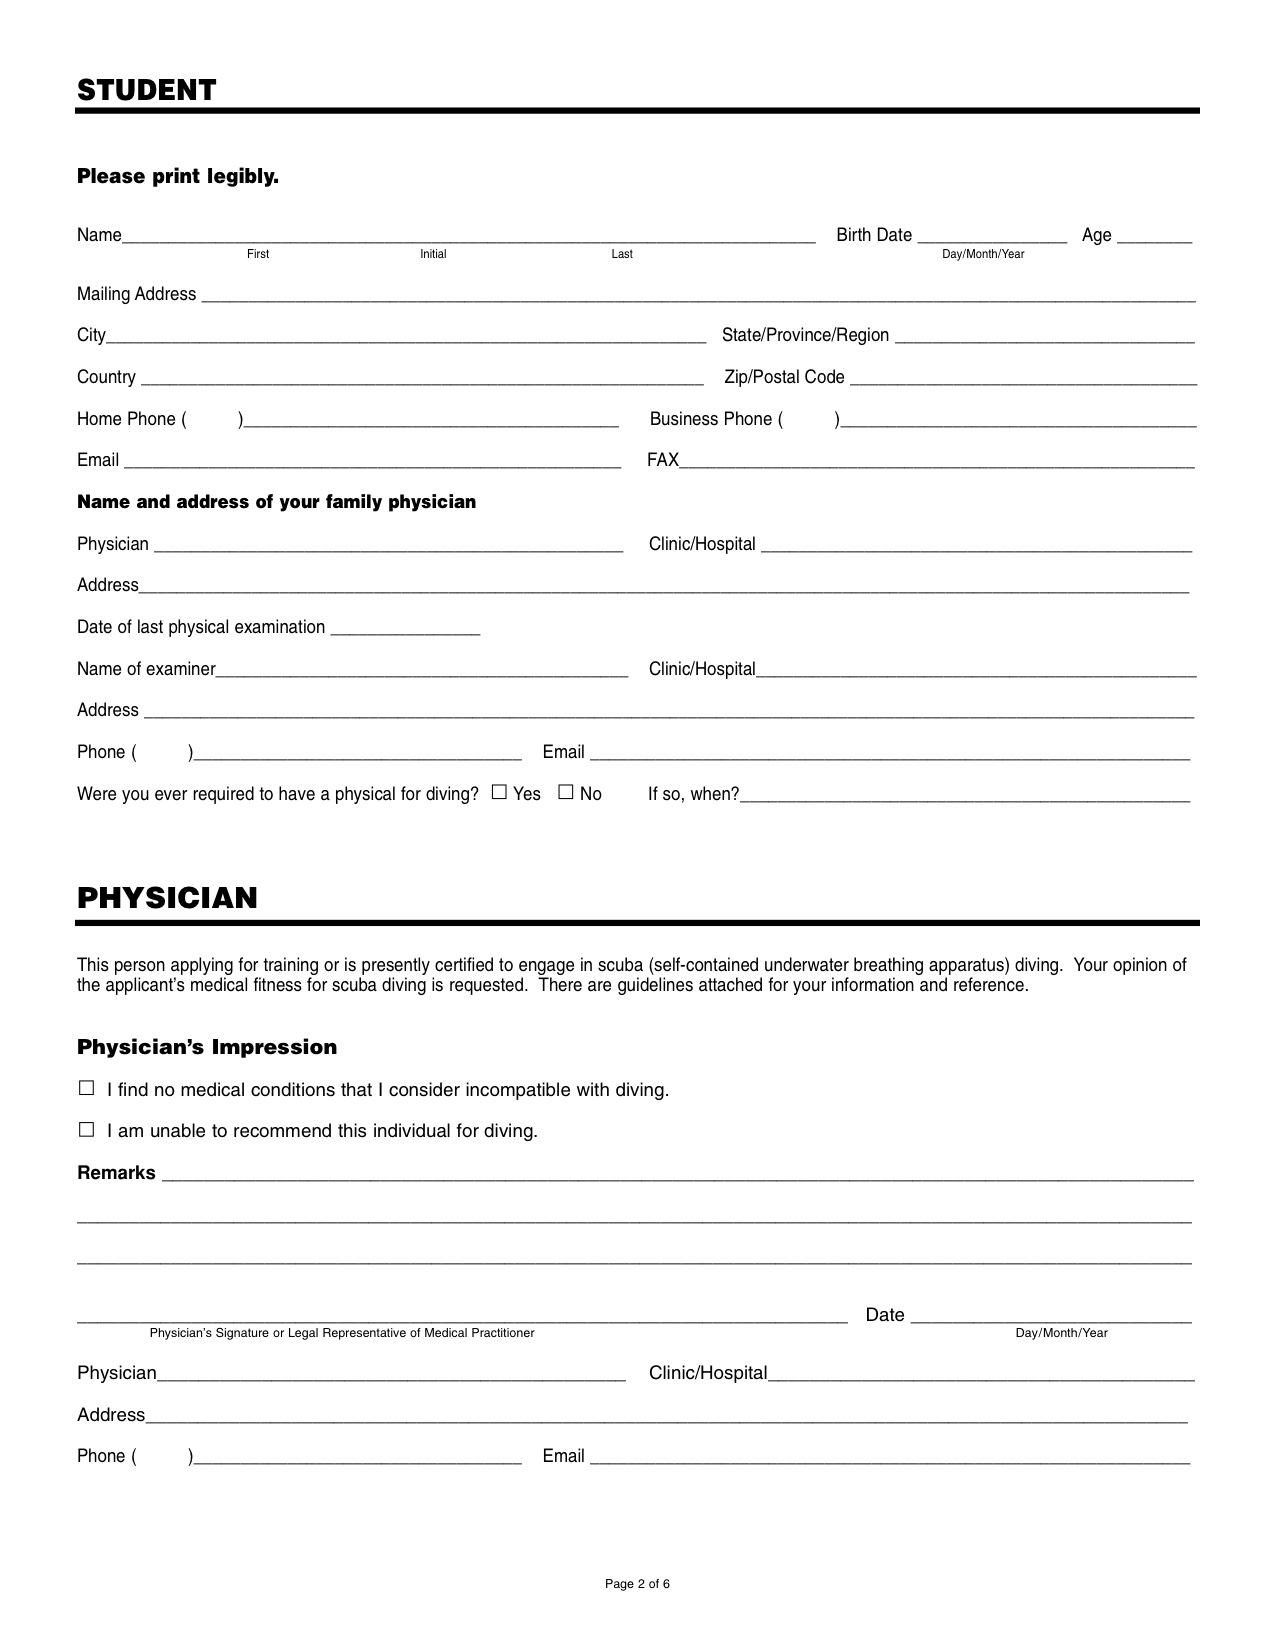 Medical form – AQUASPORT DIVING on medical questionnaire, medical charts, medical documents, medical schedule, medical records, medical insurance, medical files, medical checklist, medical treatment, medical information, medical documentation, medical paperwork, medical signs, medical privacy policy, medical history, medical reports, medical logo, medical papers, medical backgrounds, medical flyers,